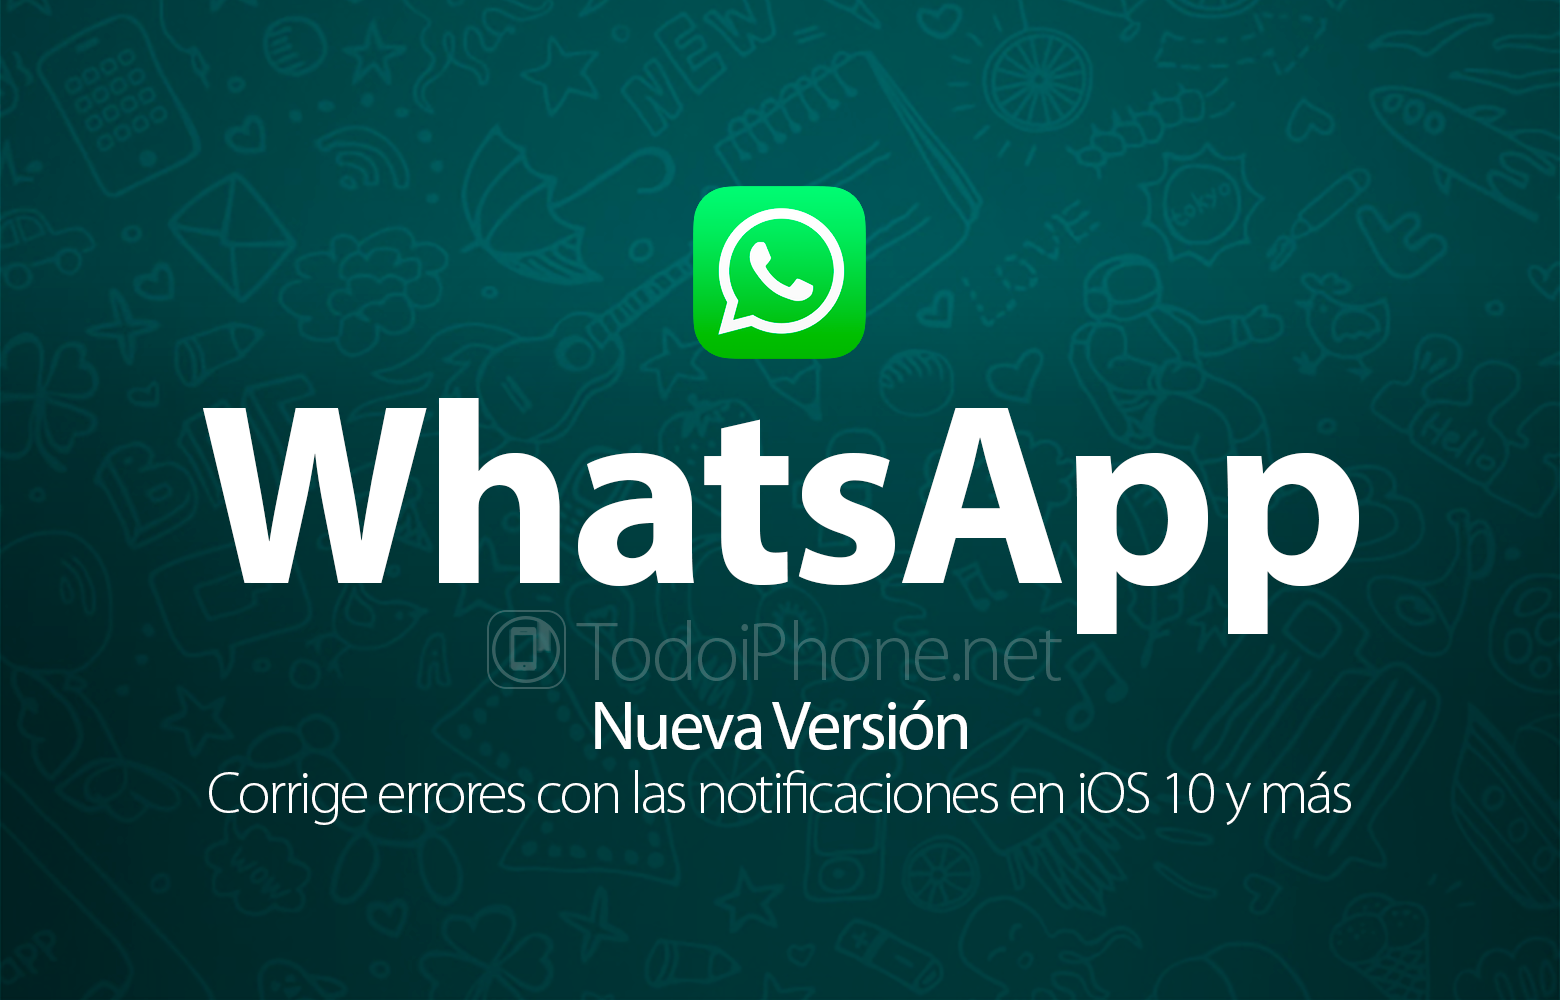 whatsapp-corrige-errores-ios-10